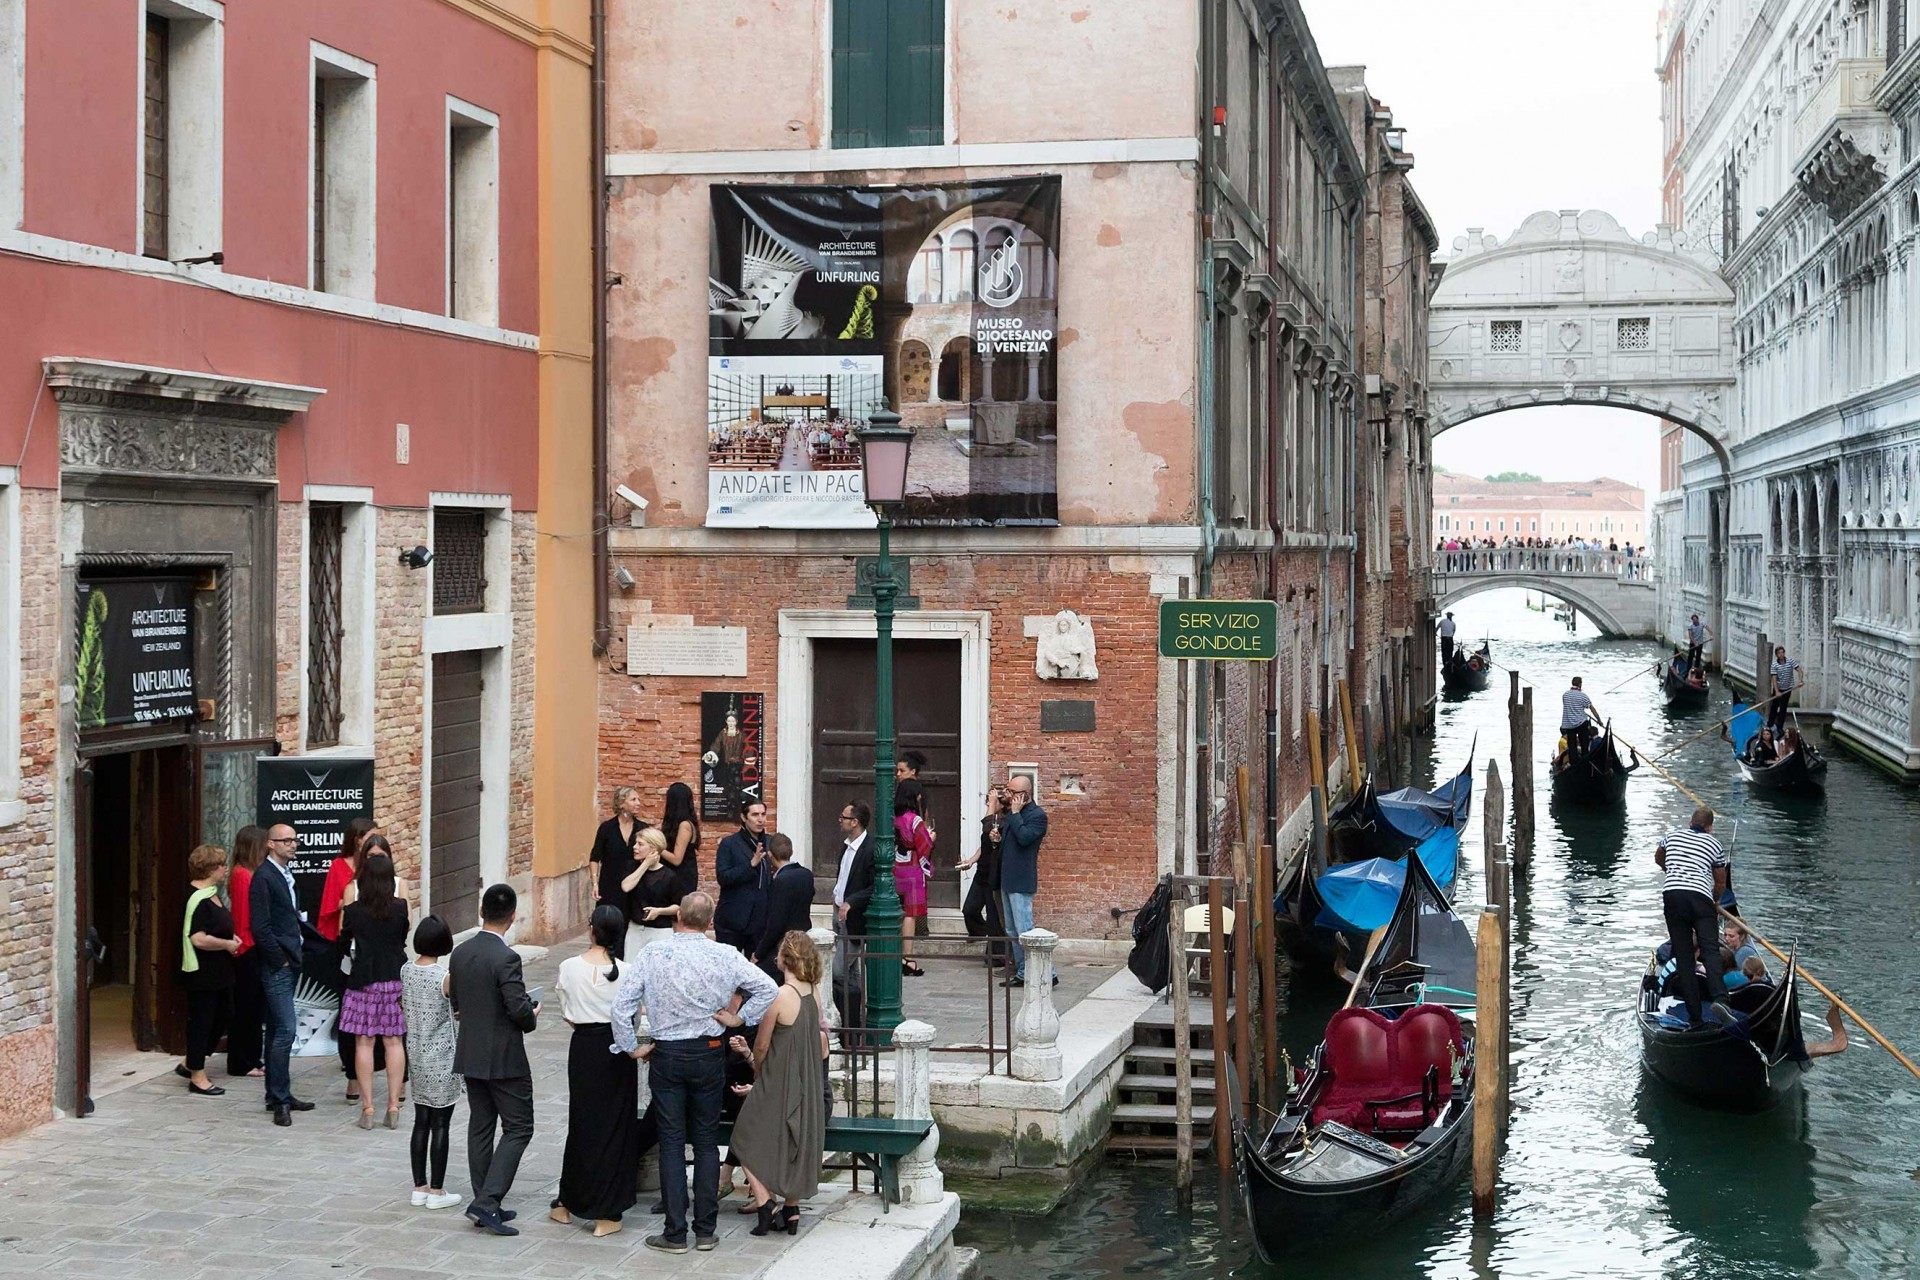 AVB Unfurling Venice - Entry to AVB Exhibition